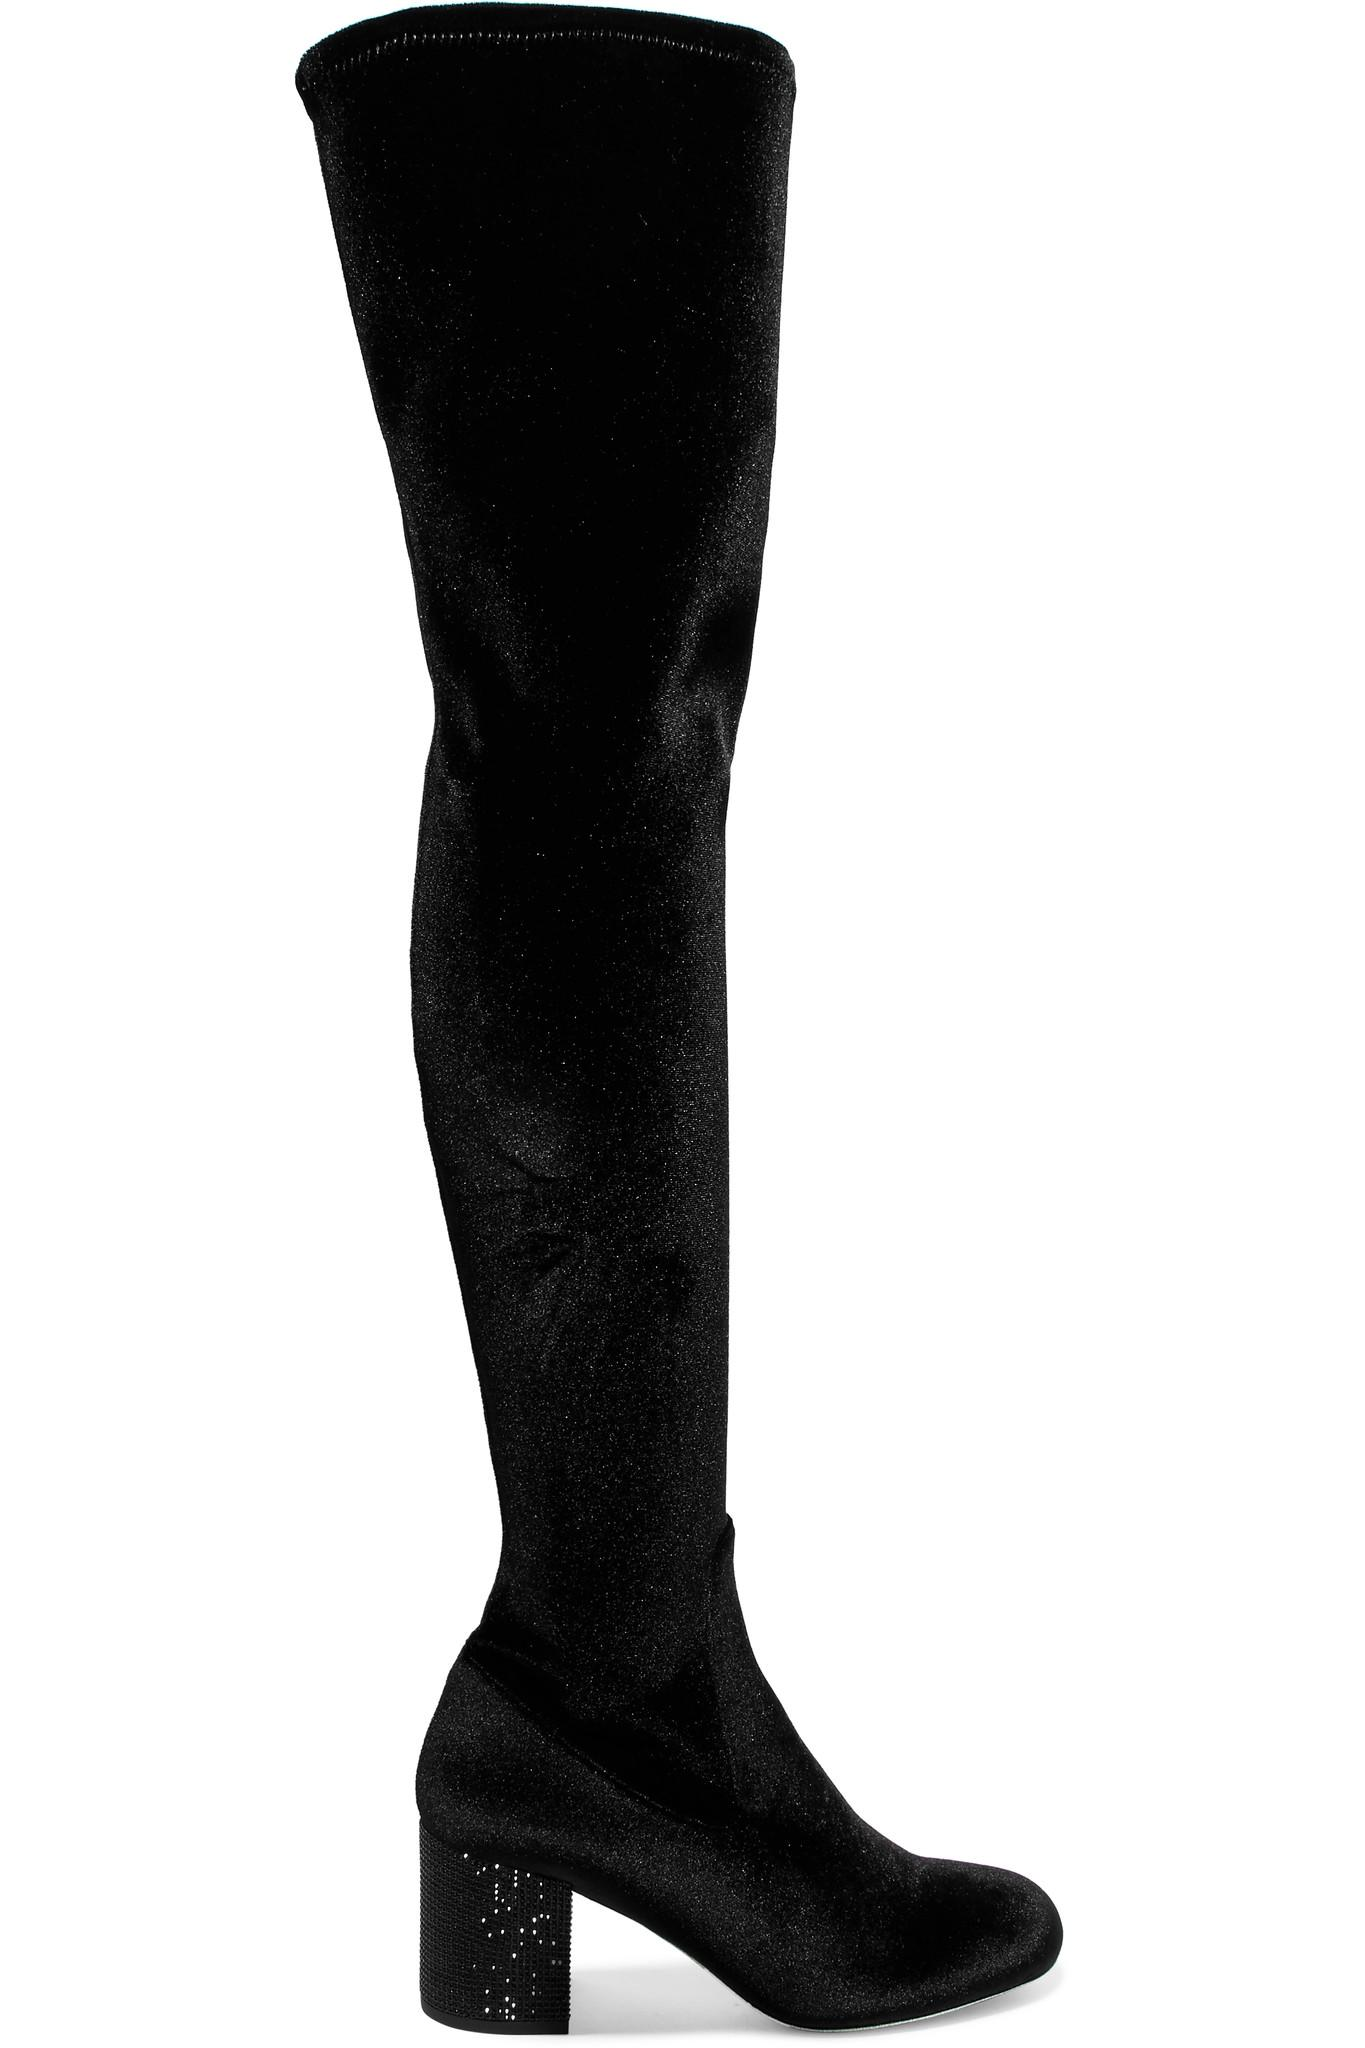 René Caovilla Rene Caovilla Embellished Knee-High Sock Boots cheap limited edition sale real deals online cheap 2015 new 5gC16